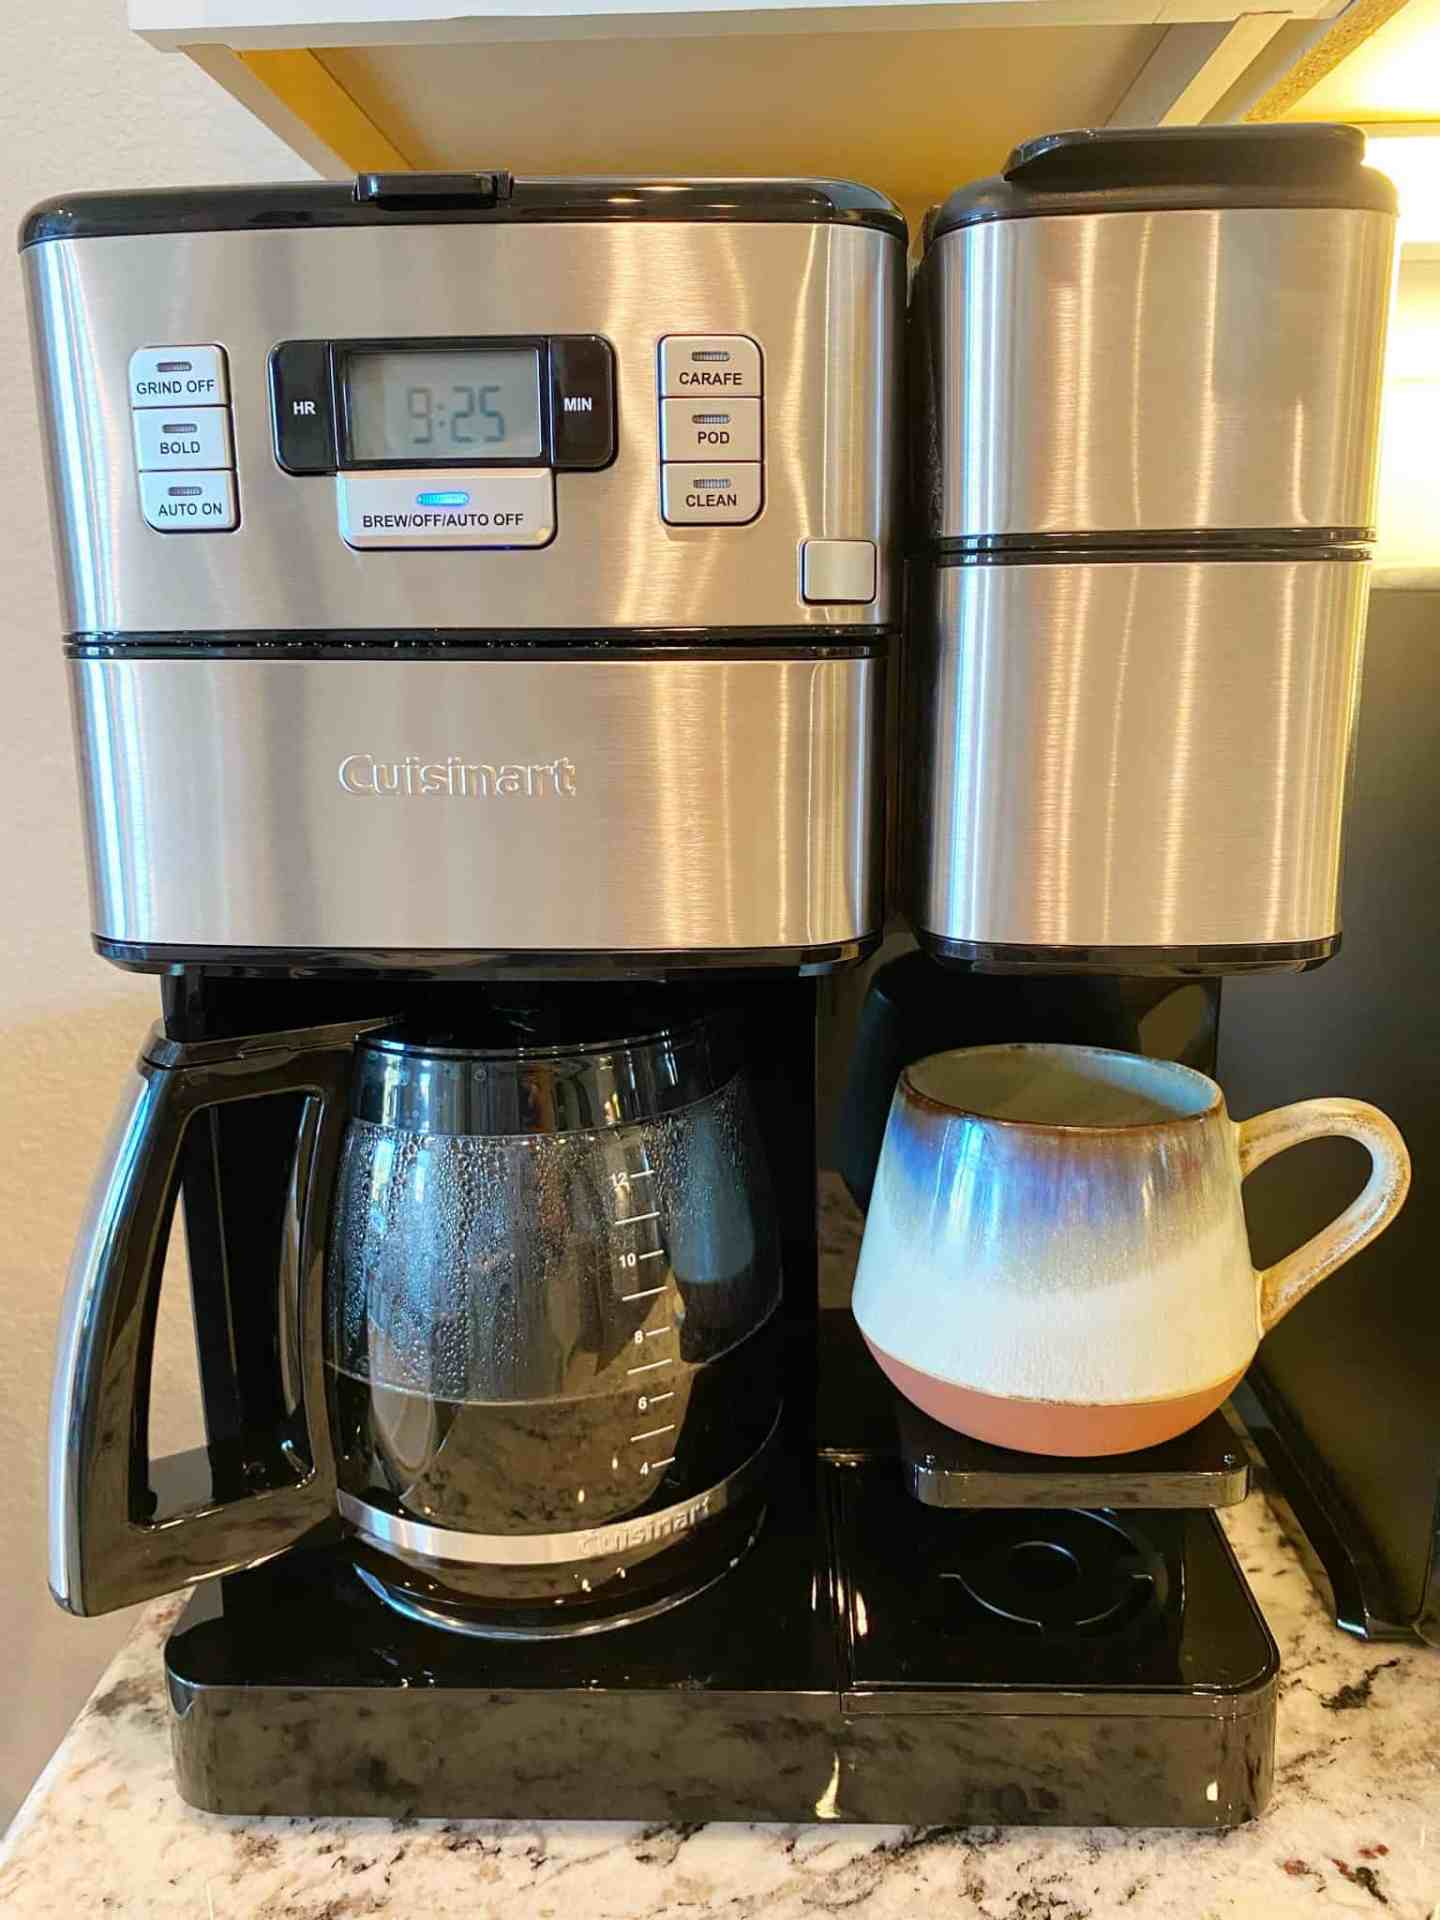 Coffee-Maker-with-Grinder-and-Single-Cup-Options-cuisinart-1